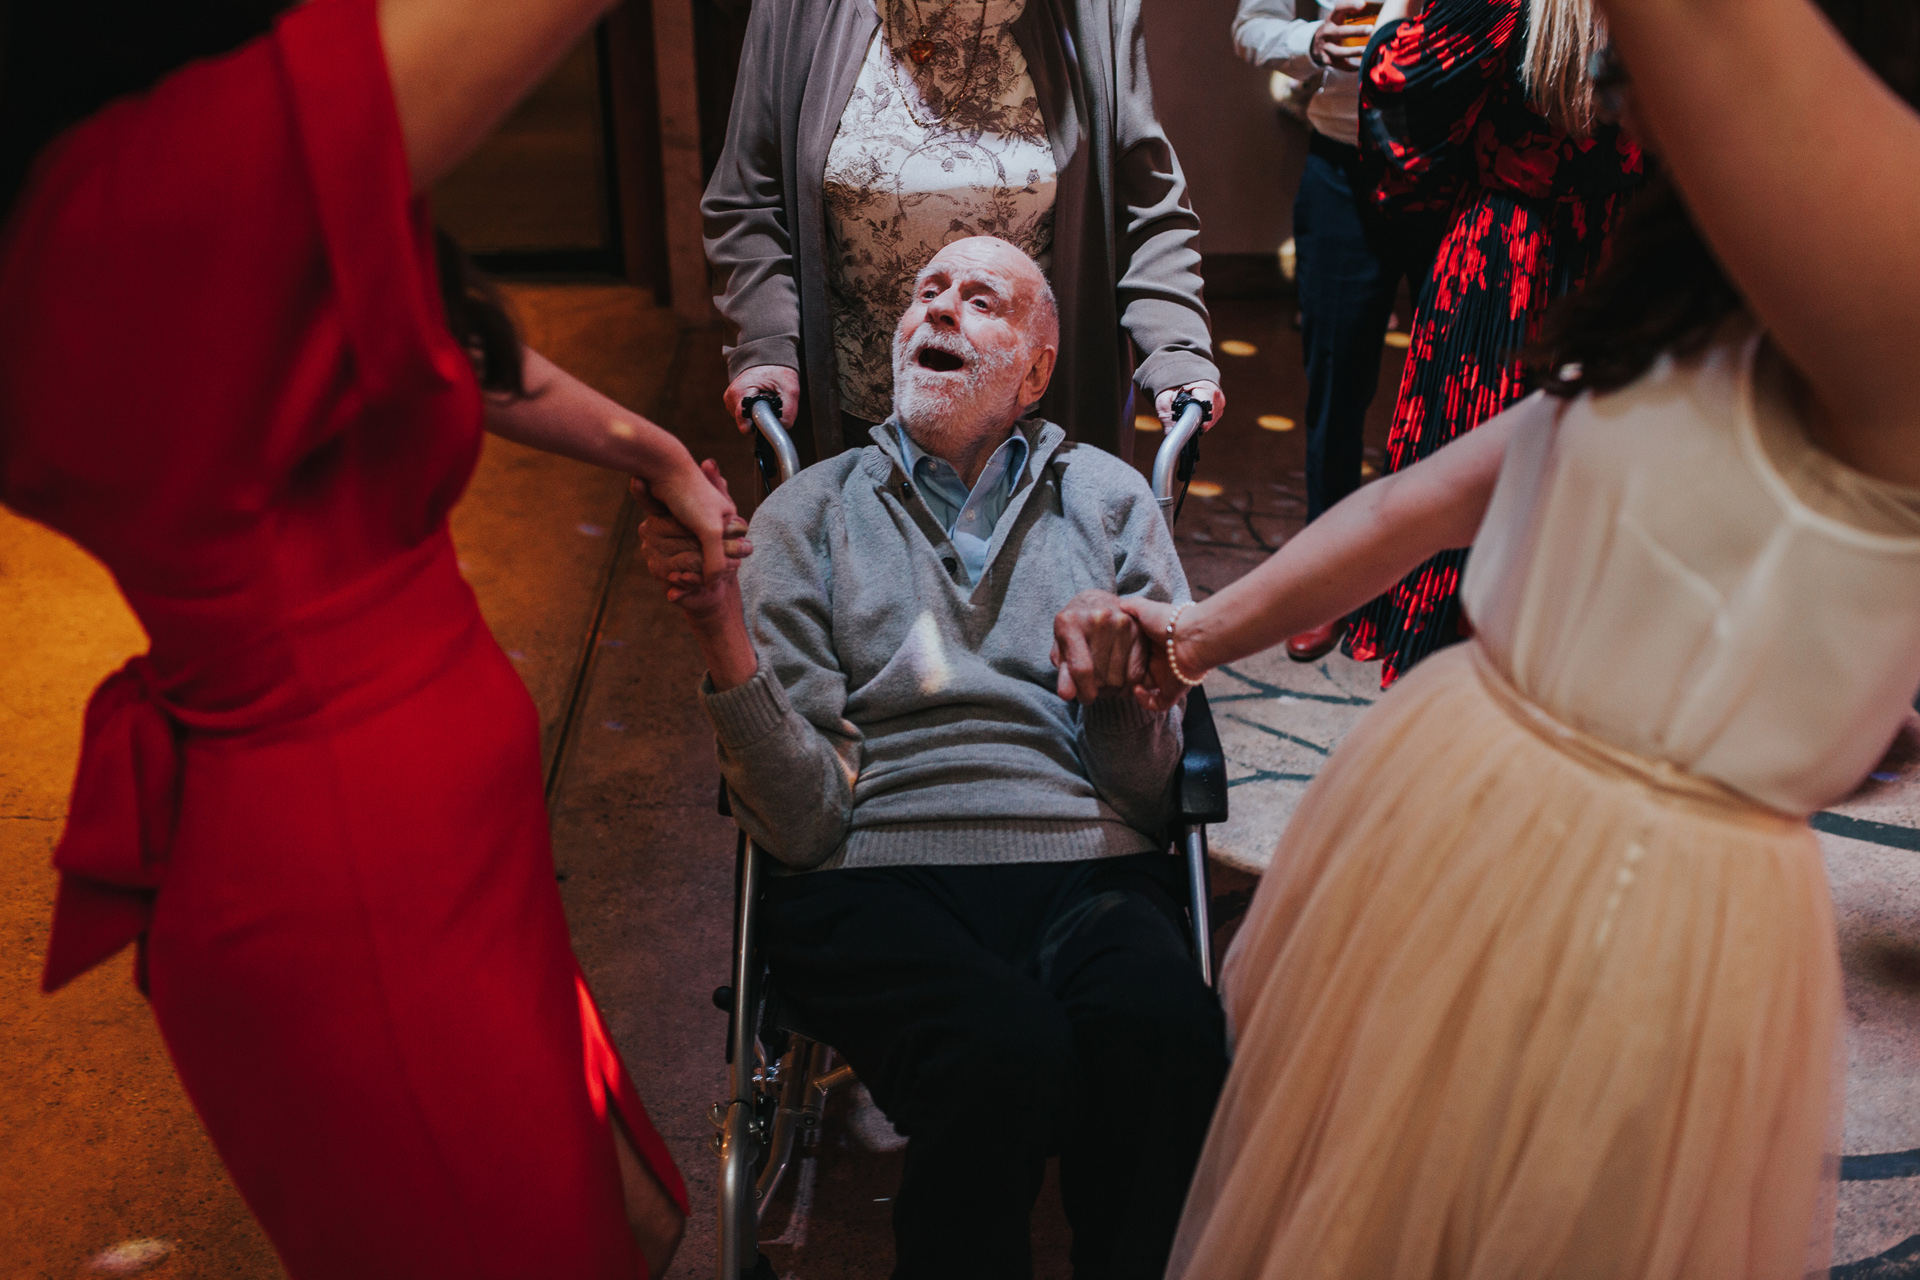 Grandad having a great time on the dance floor.